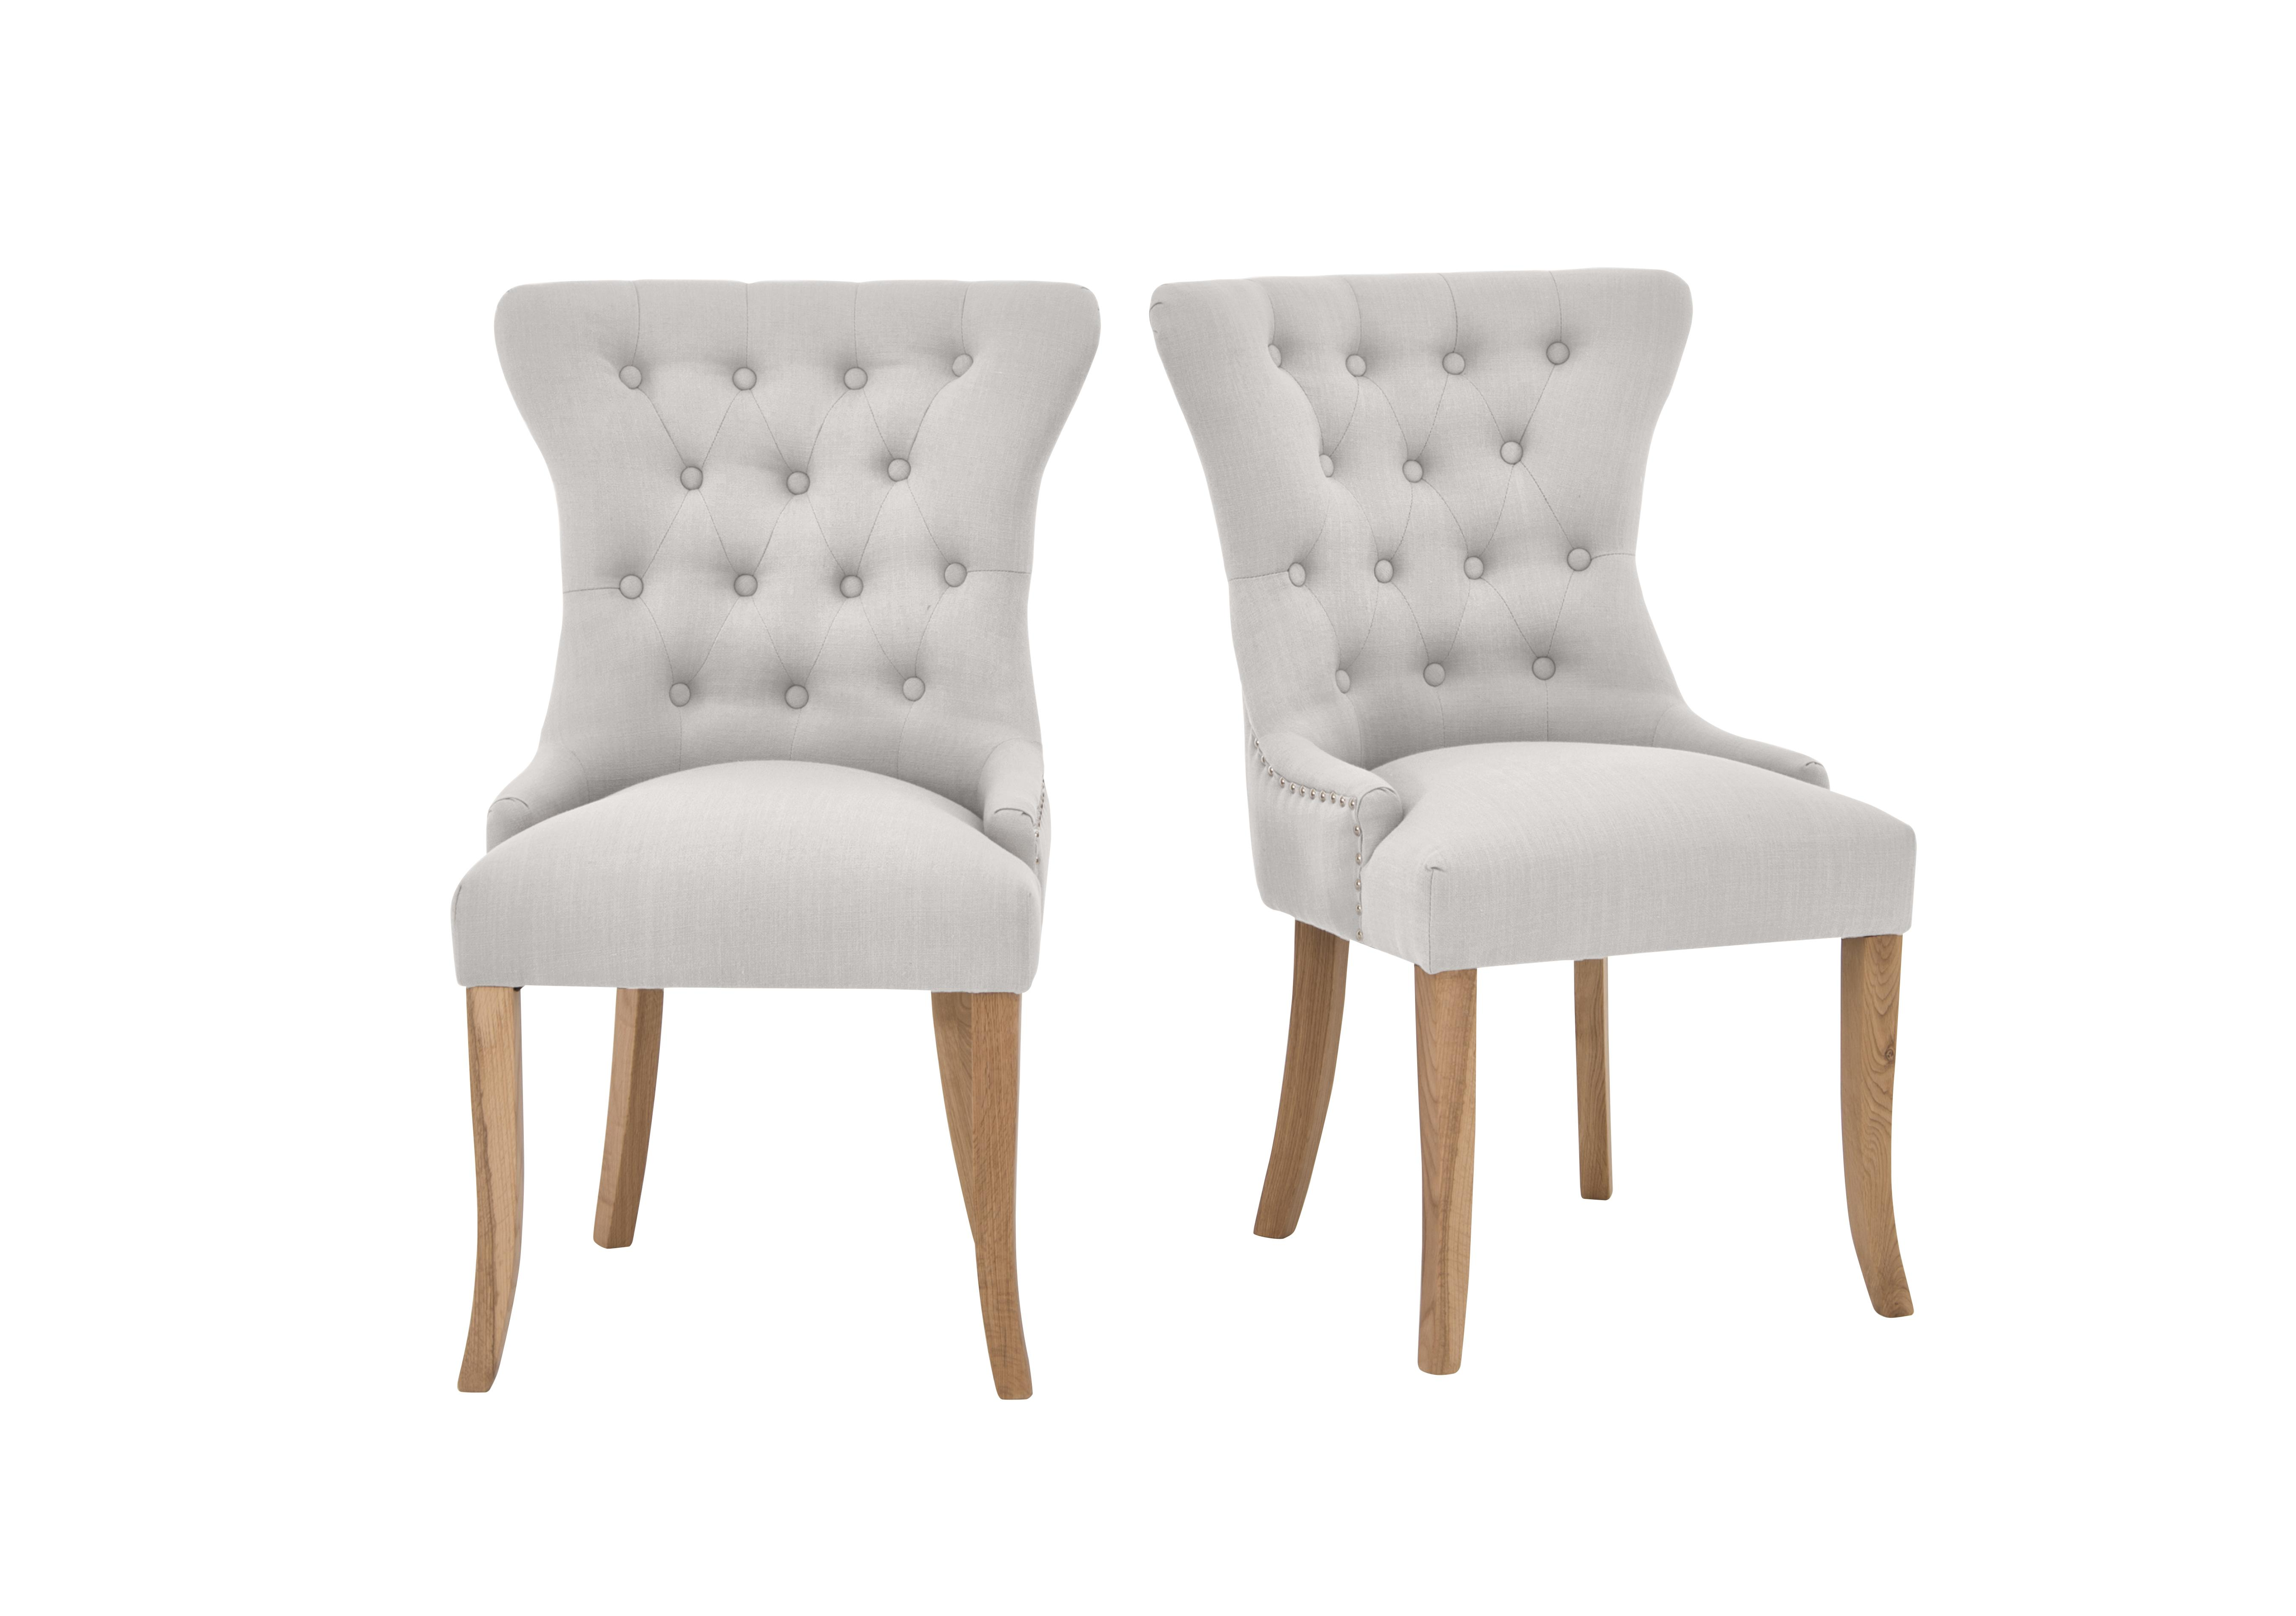 Upholstered dining chairs Furniture Village